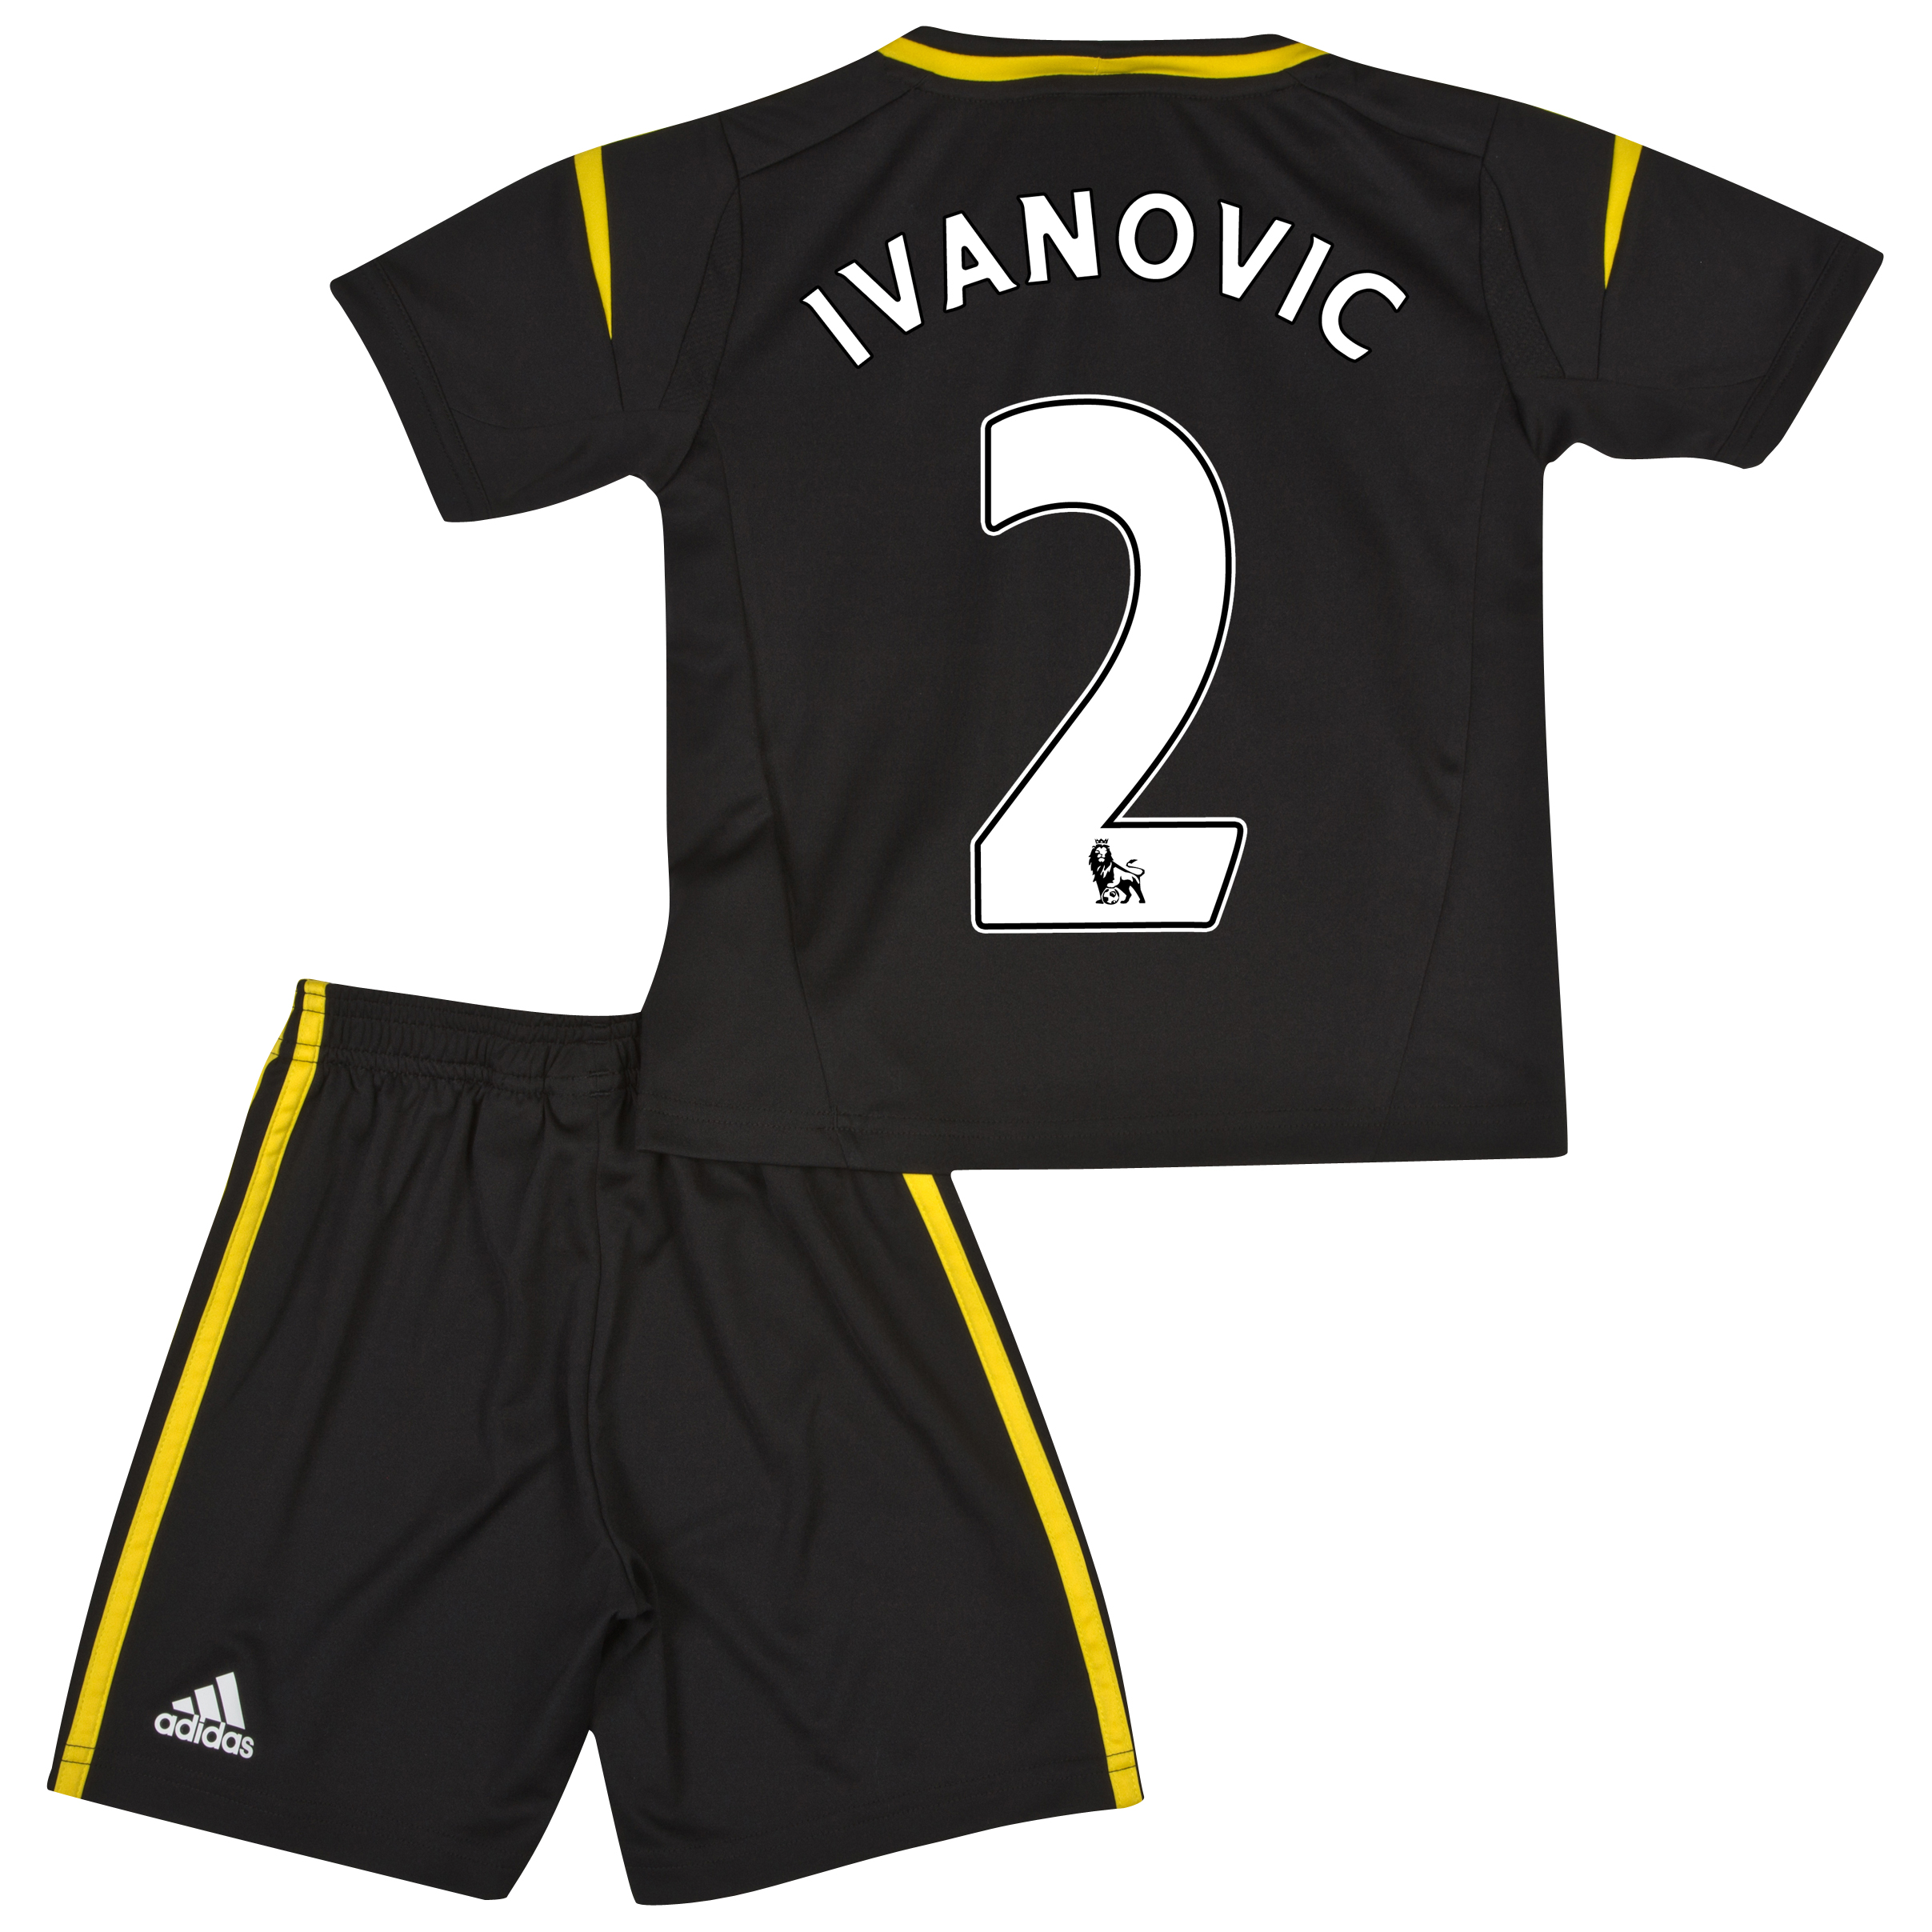 Chelsea Third Mini Kit 2012/13 with Ivanovic 2 printing